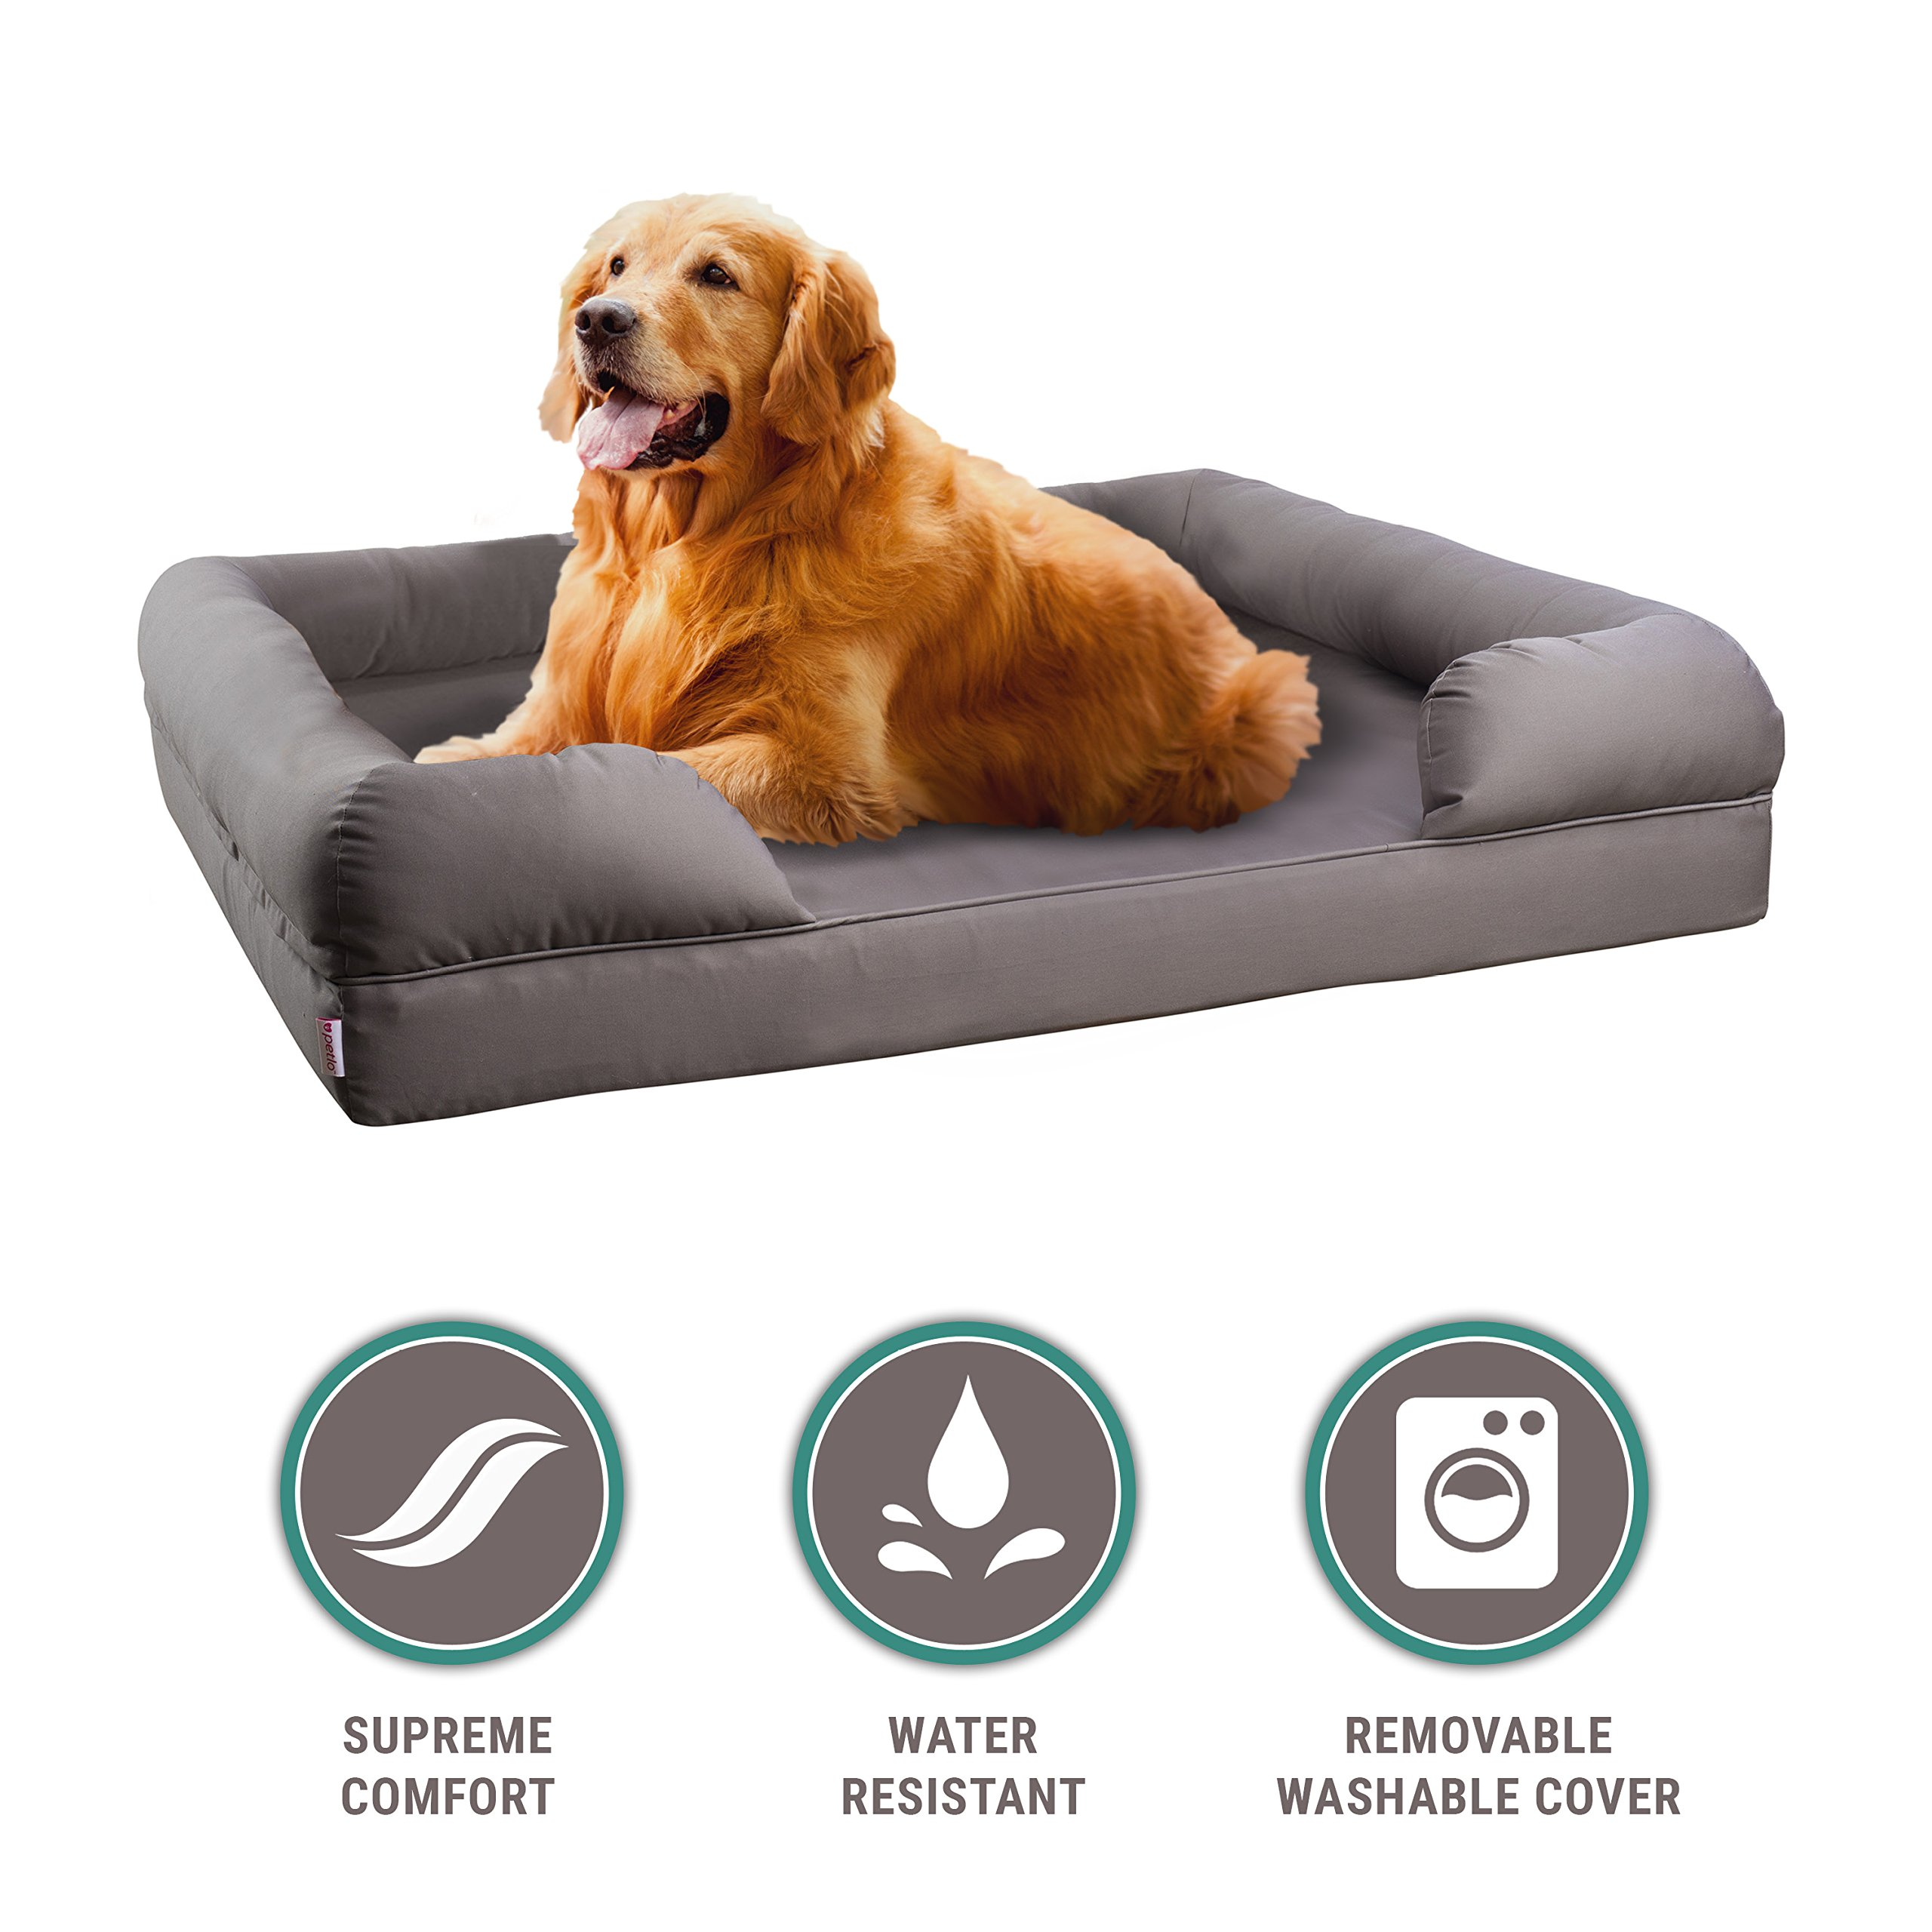 Petlo Orthopedic Pet Sofa Bed - Dog, Cat or Puppy Memory Foam Mattress Comfortable Couch for Pets with Removable Washable Cover (Large - 36'' x 28'' x 9'', Grey)